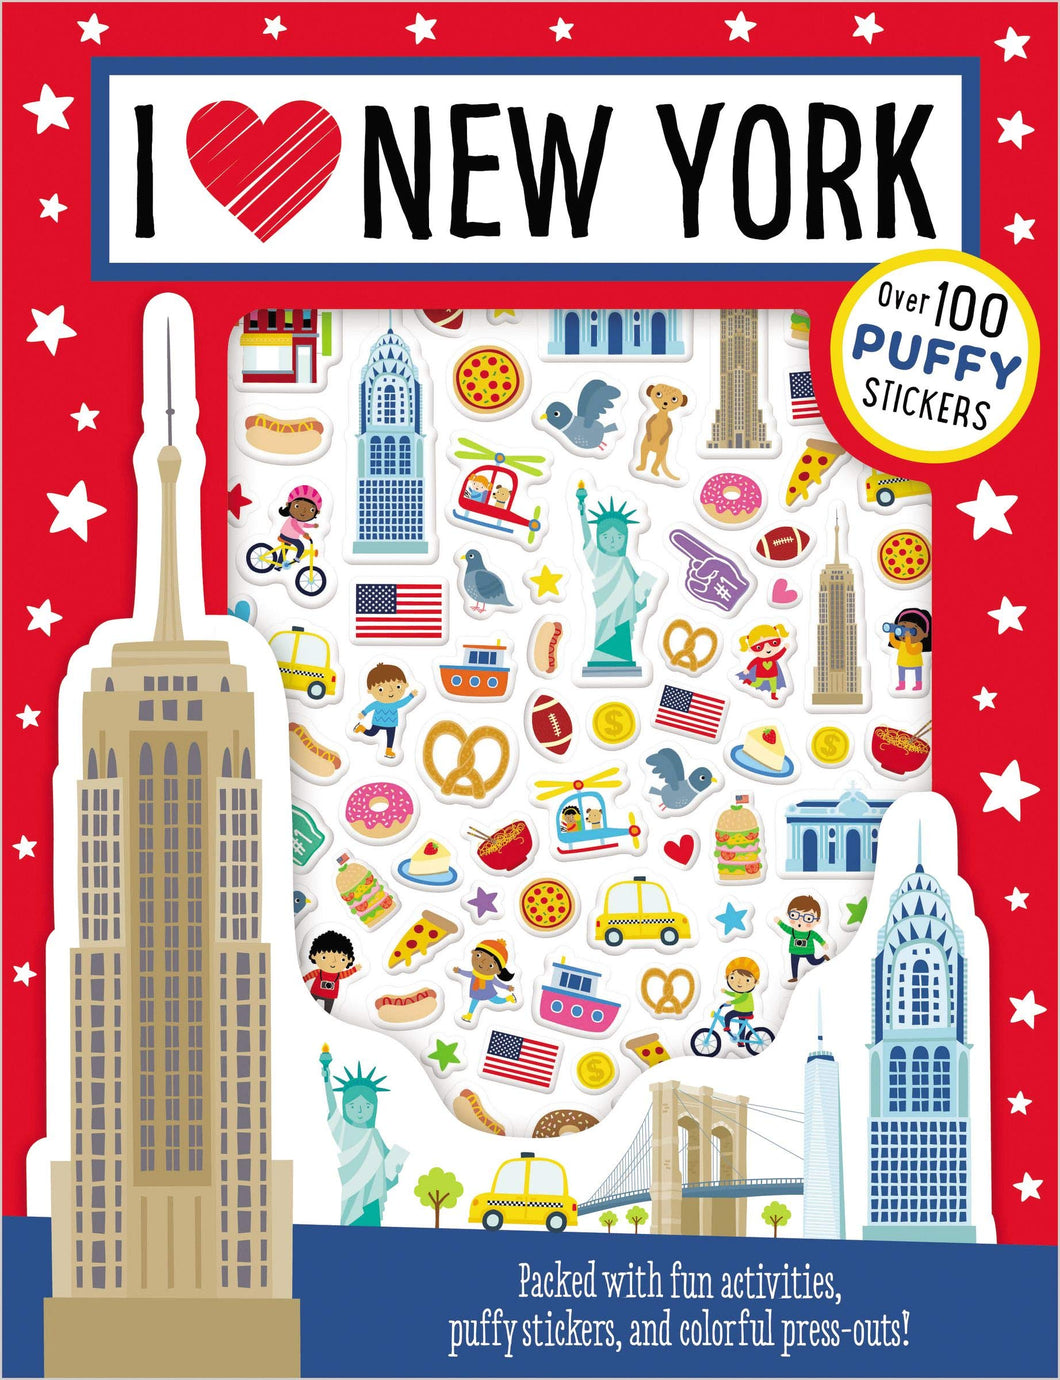 I Love New York Puffy Stickers